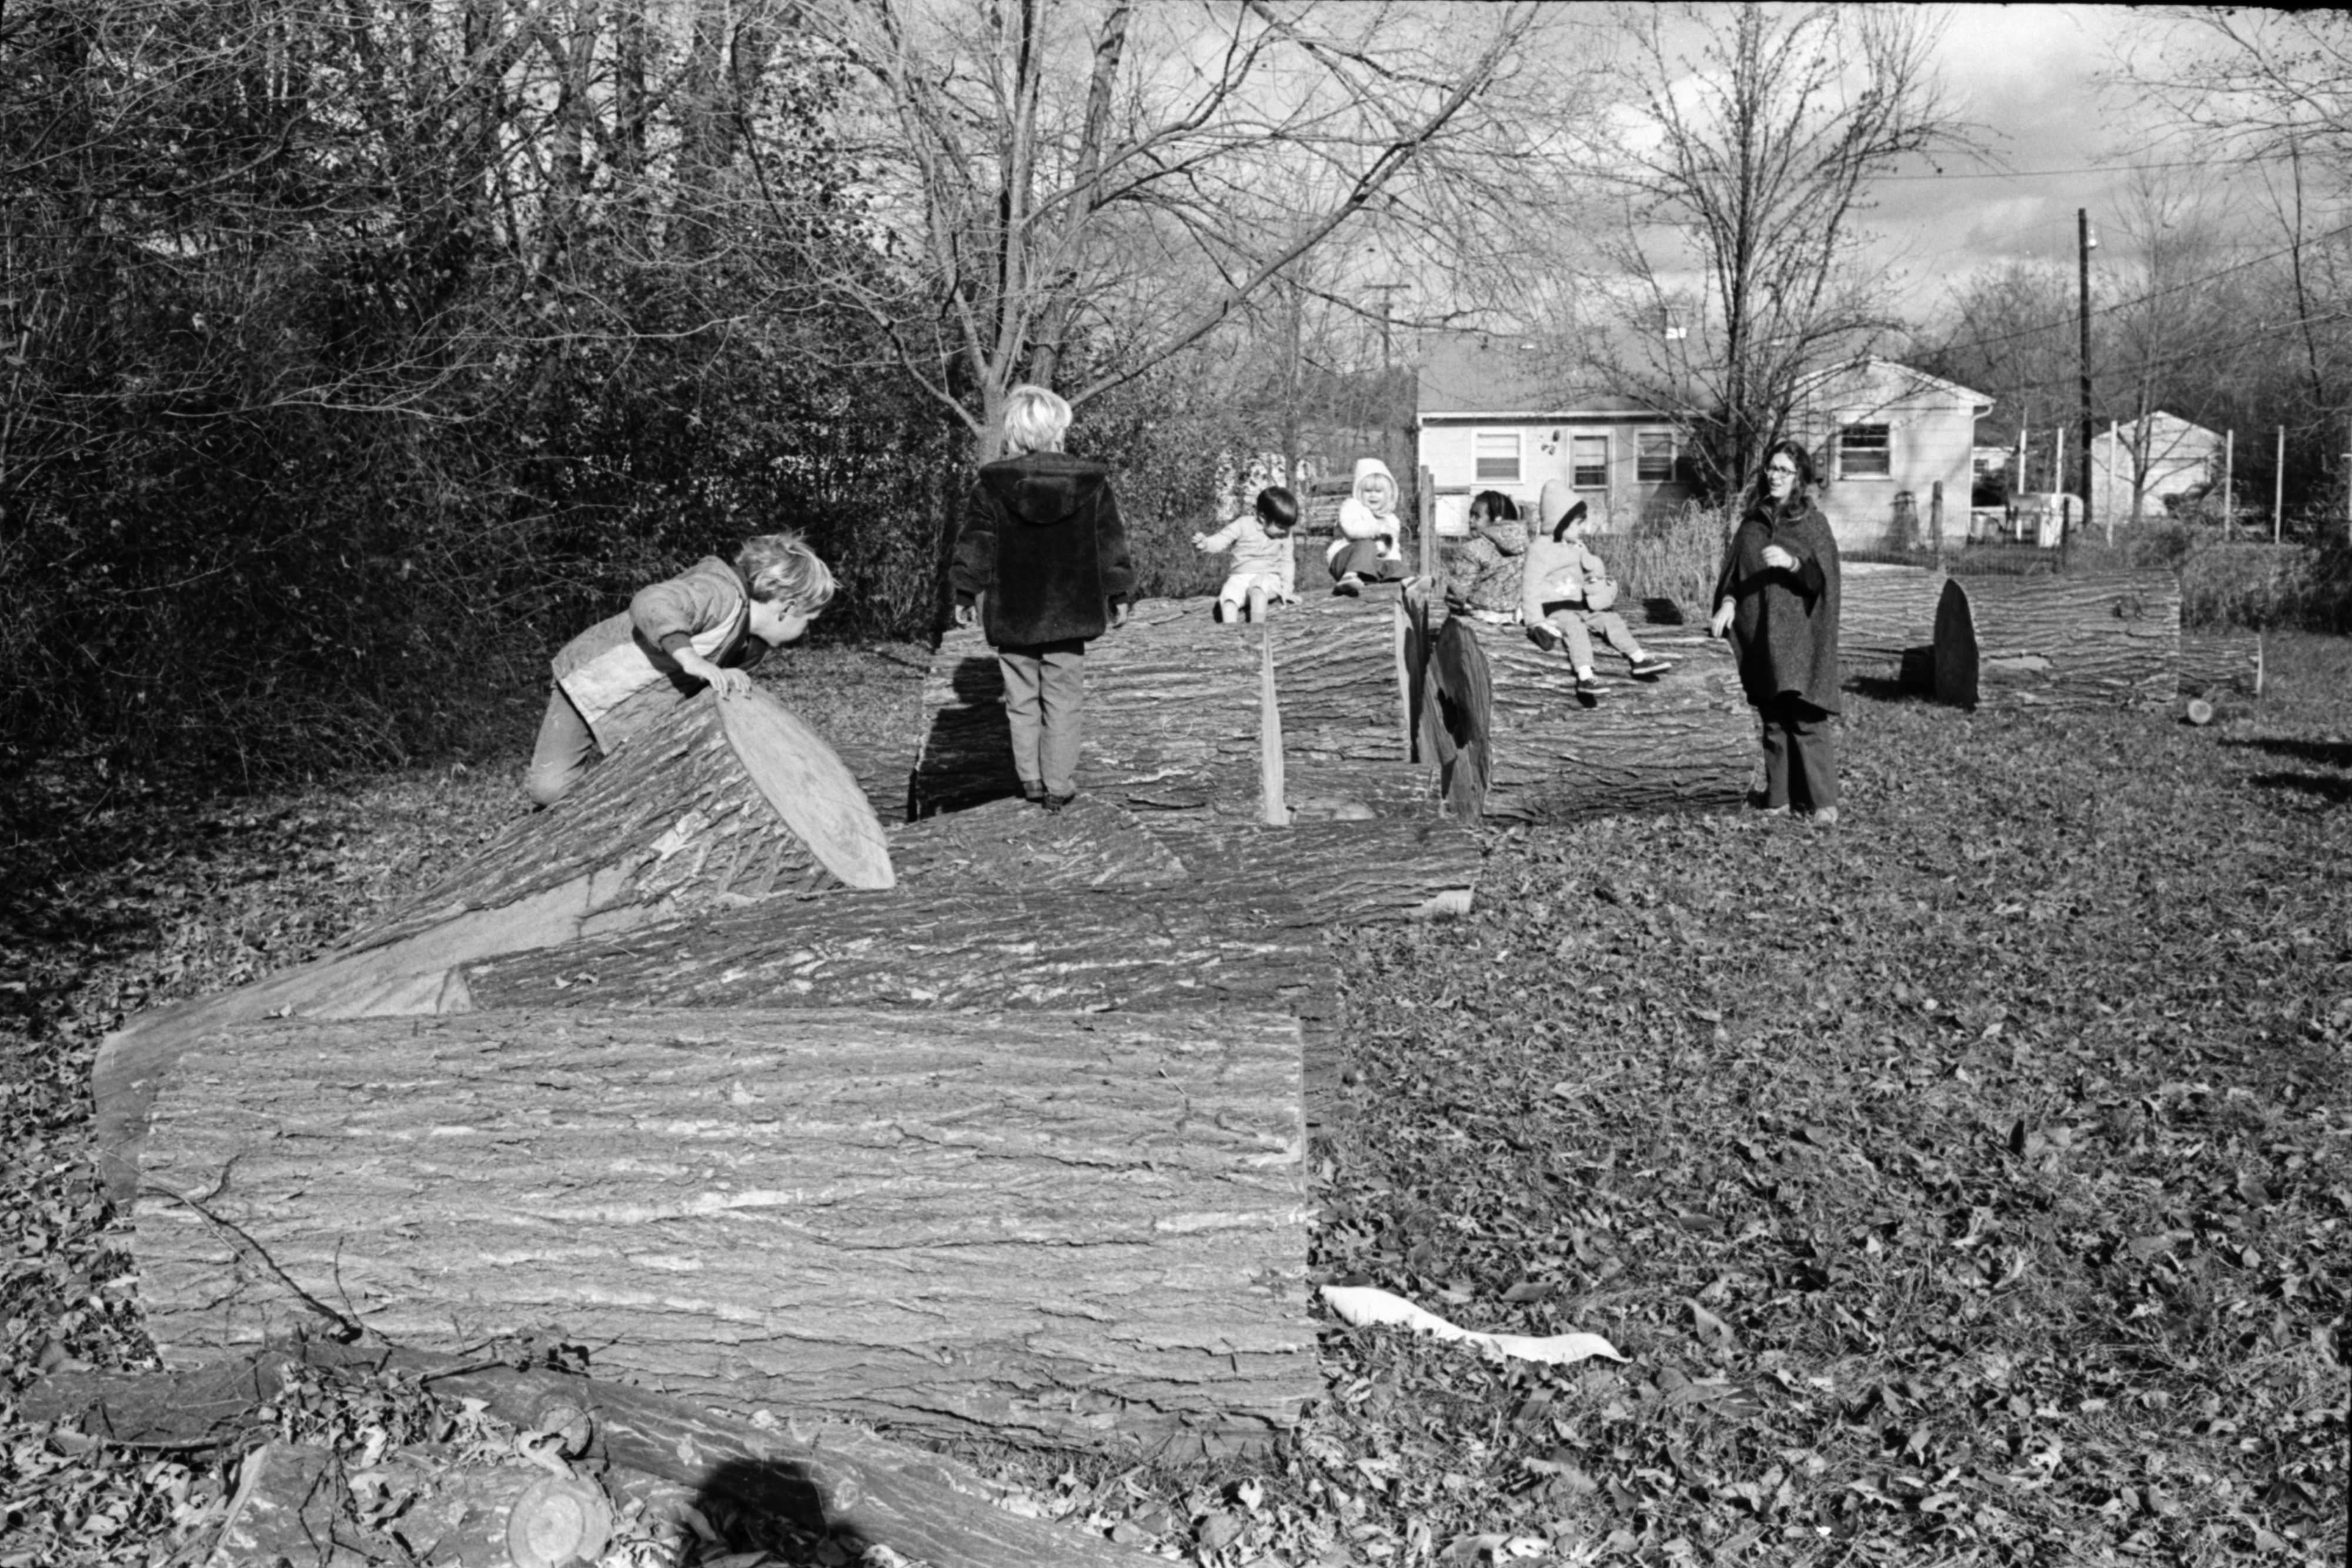 Children Play on Logs, November 1969 image